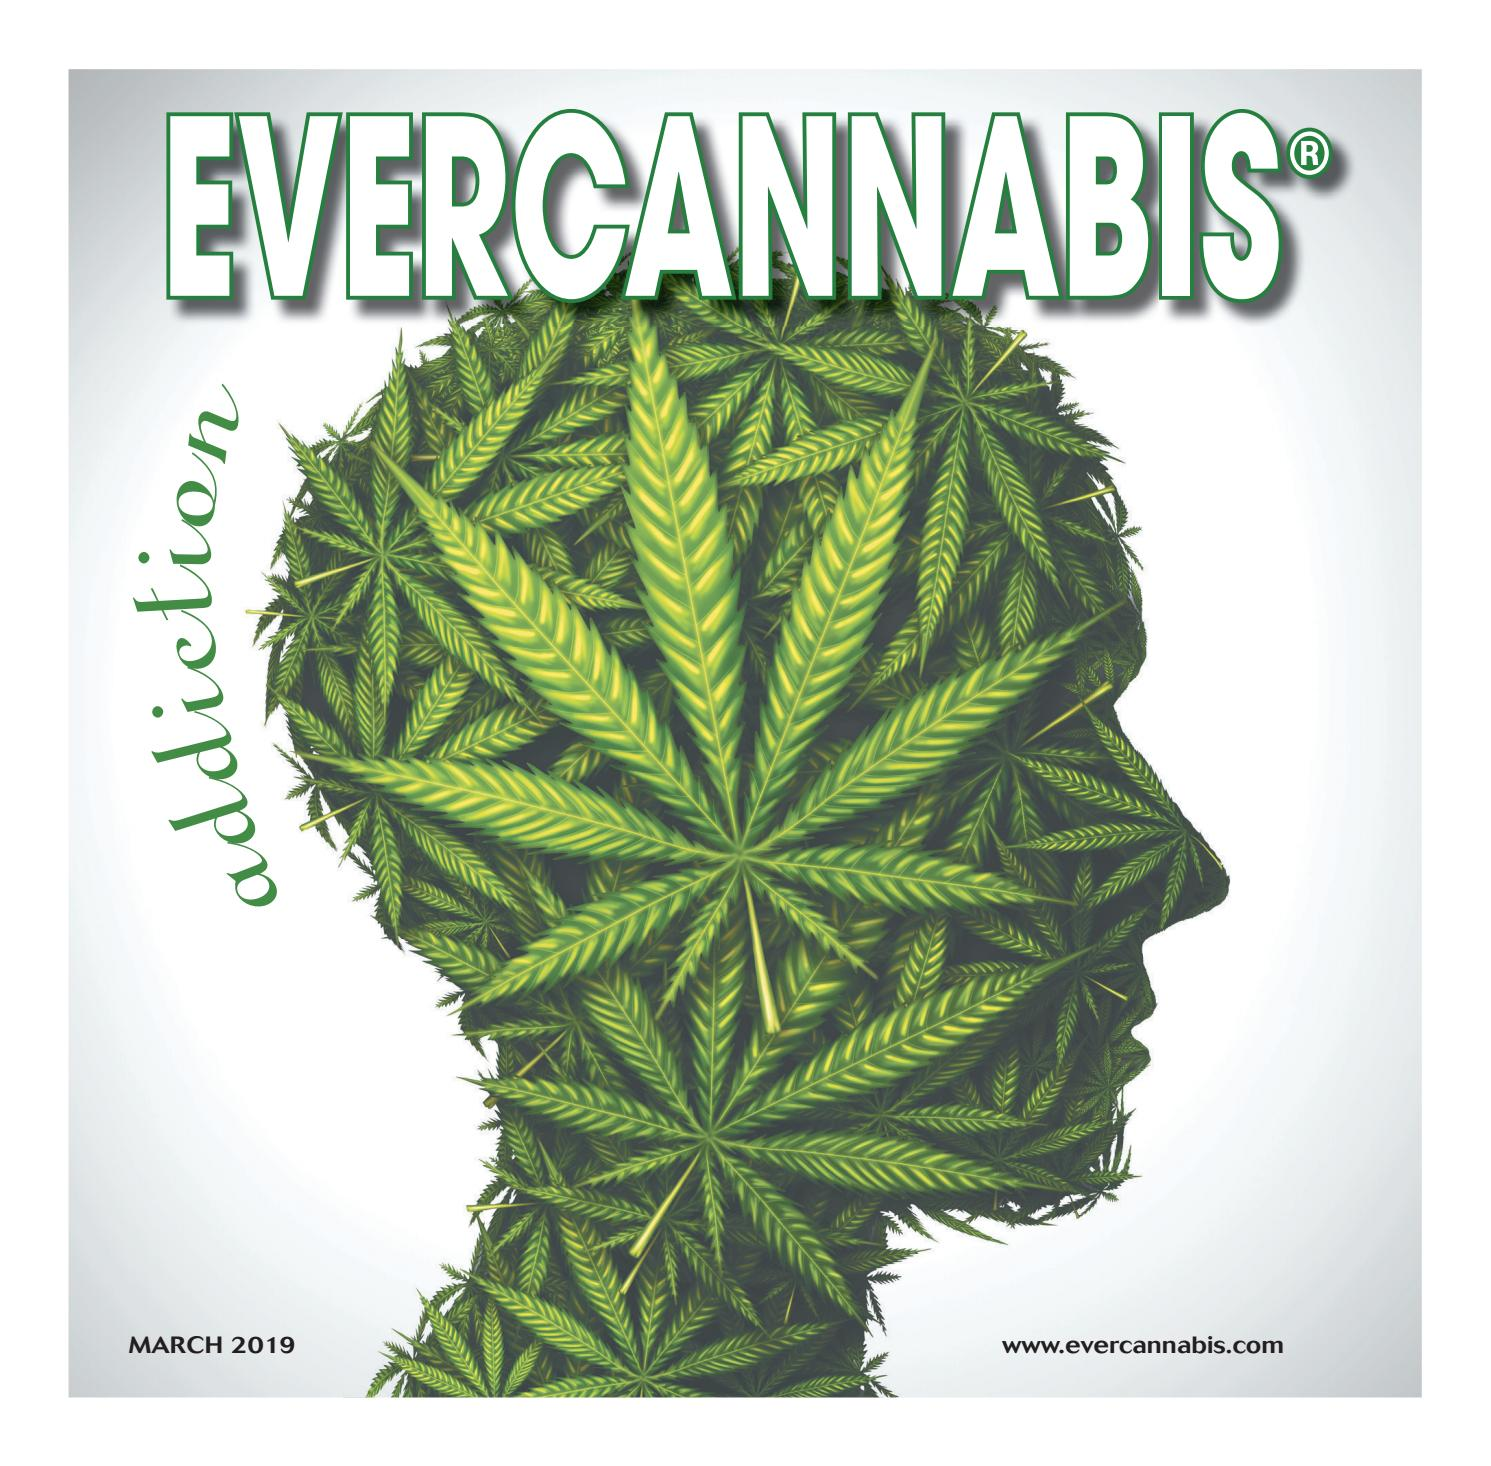 EVERCANNIBIS, March 1, 2019 by Cowles Publishing - issuu